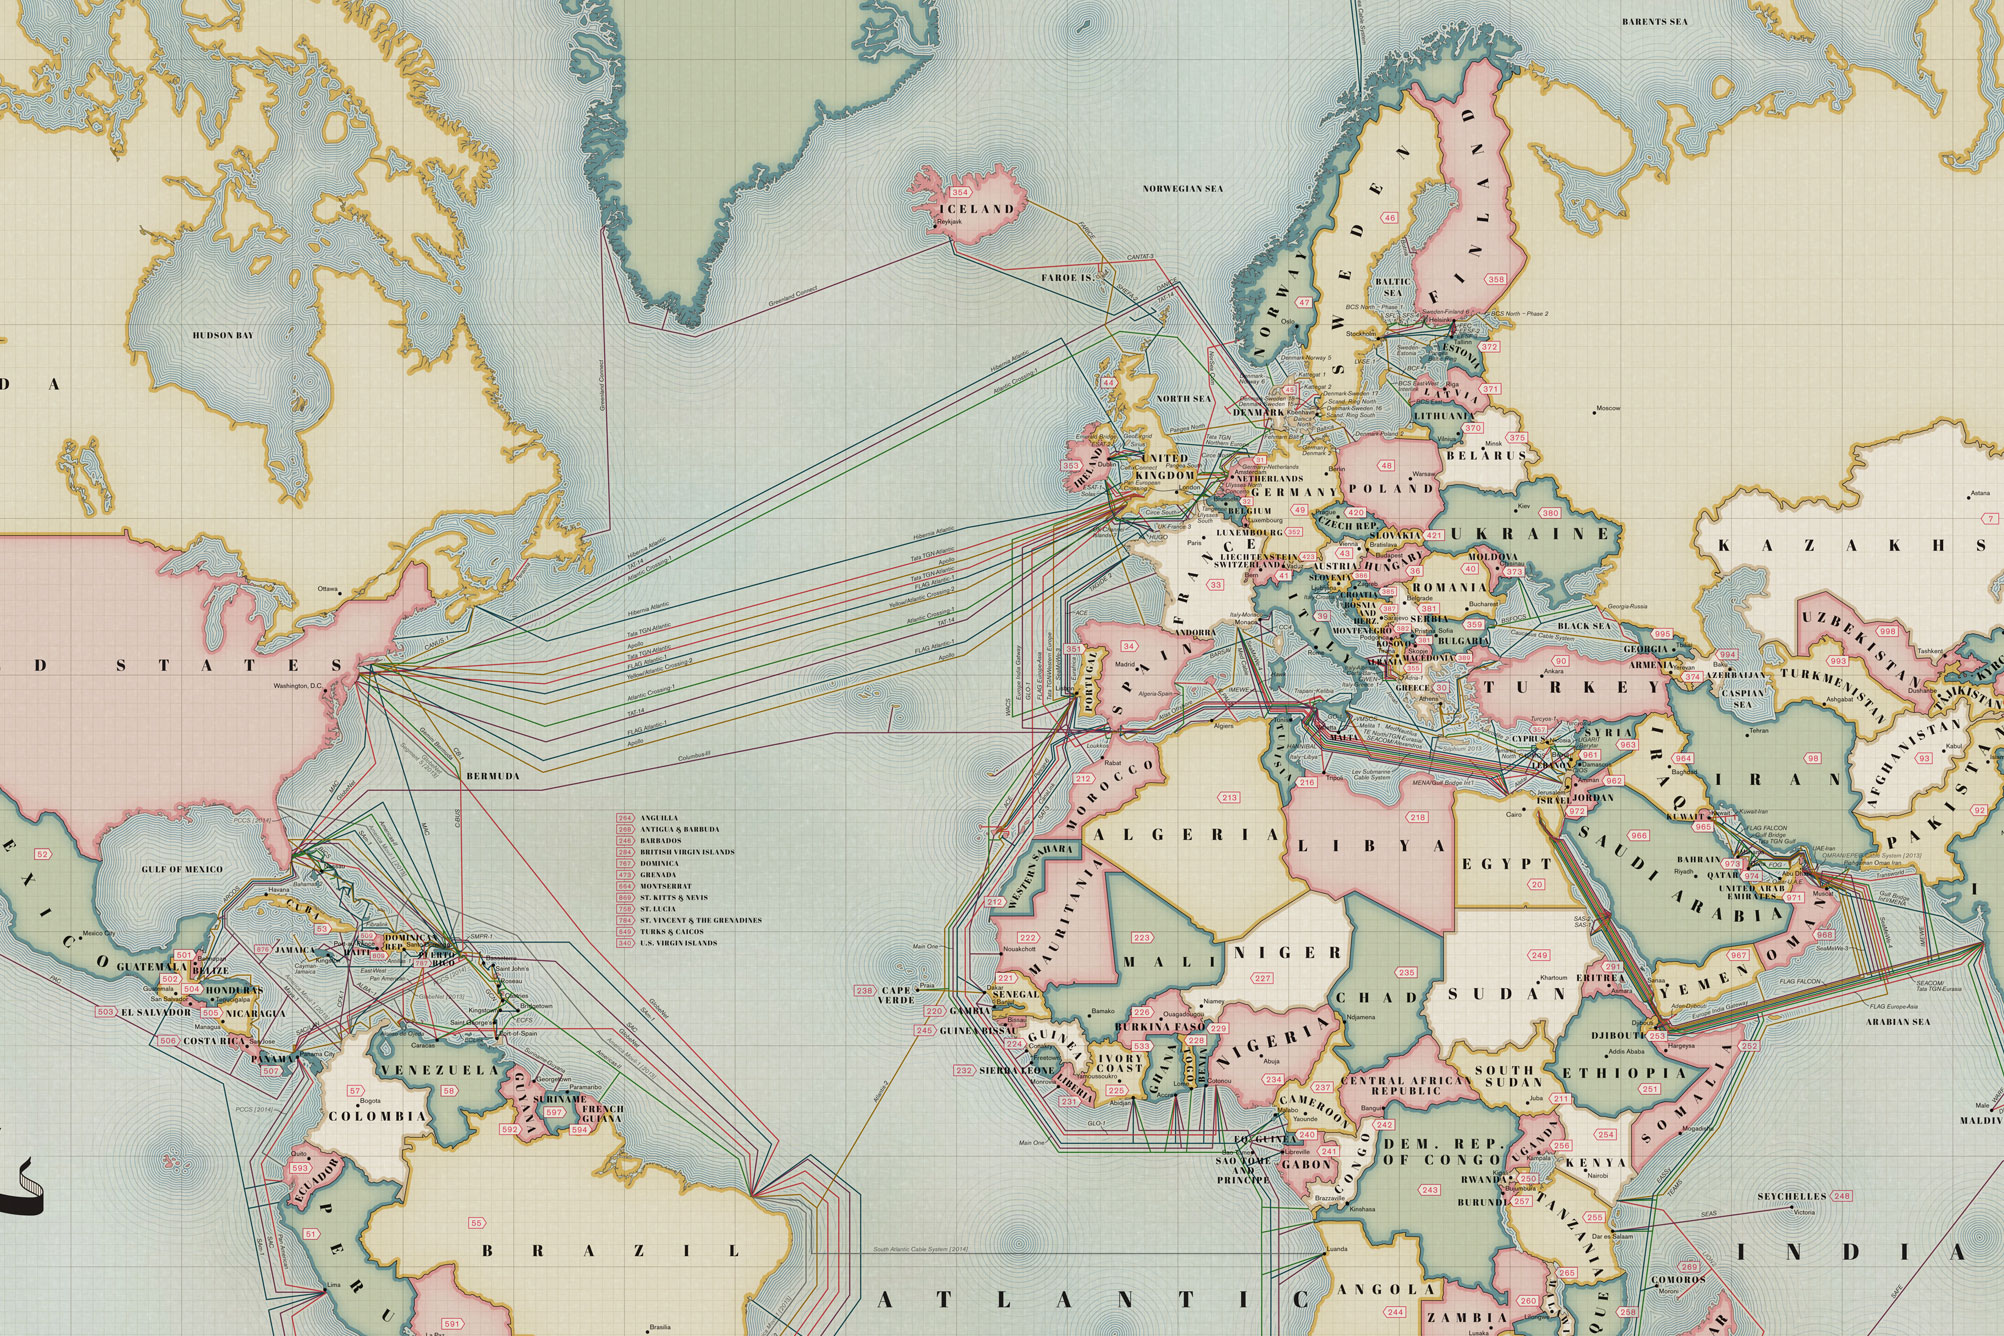 submarine-cable-map-2013-color.jpg